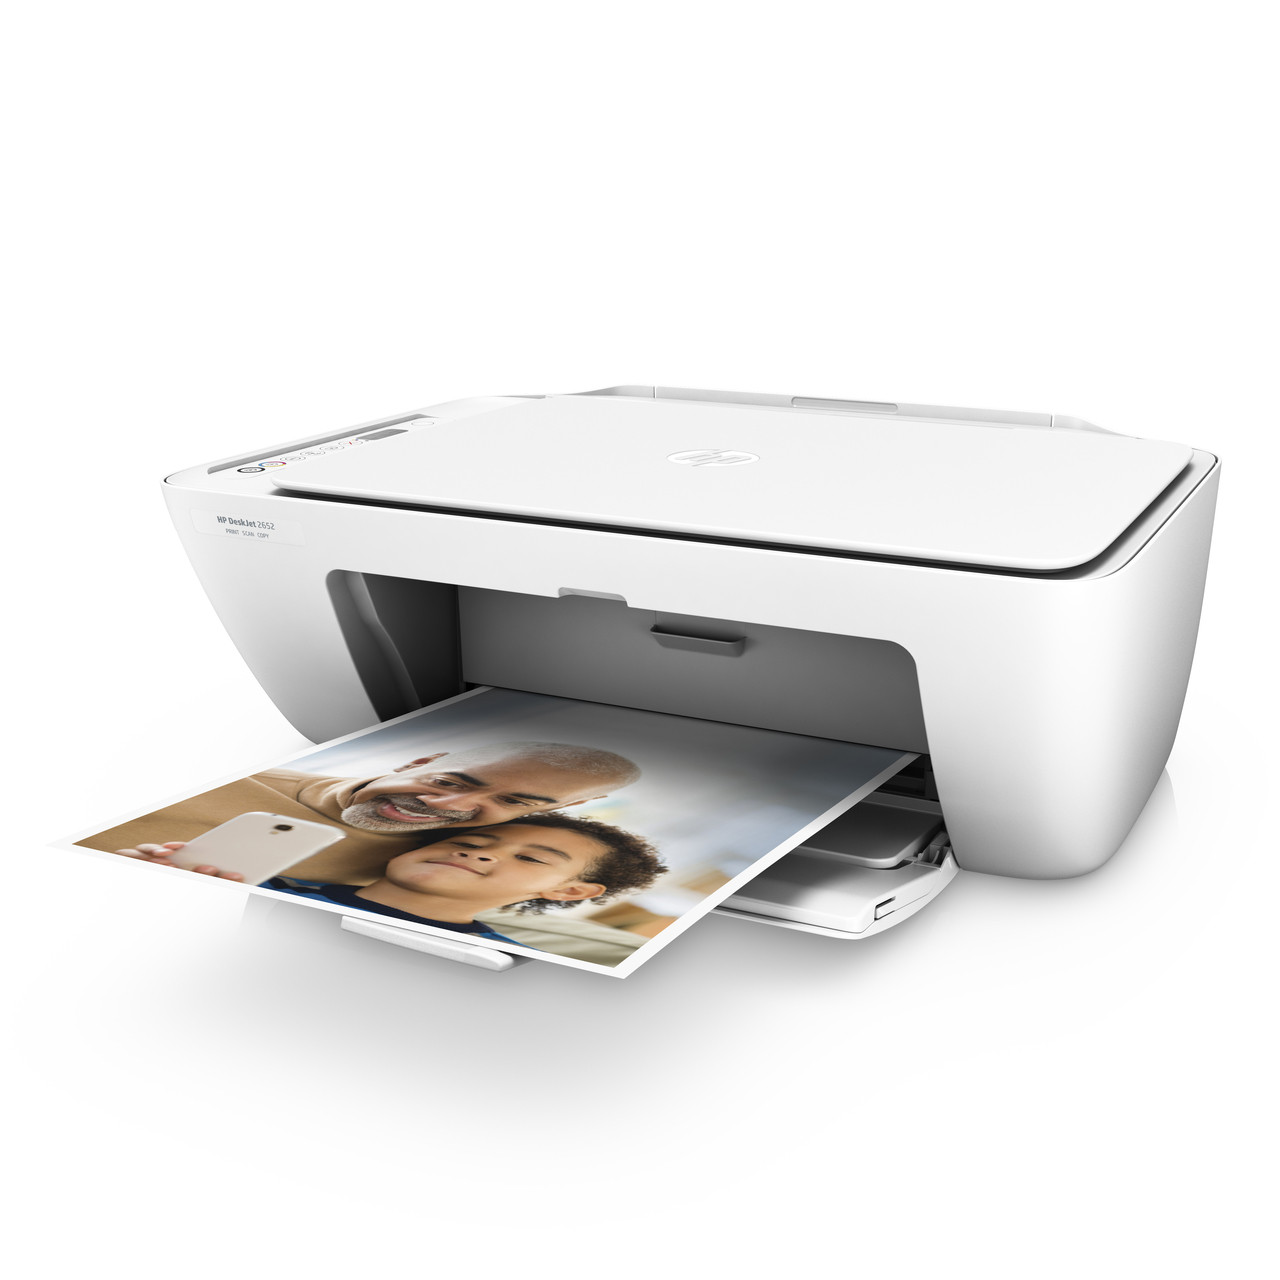 HP DeskJet 2652 Wireless All-in-One Printer (HP2652)